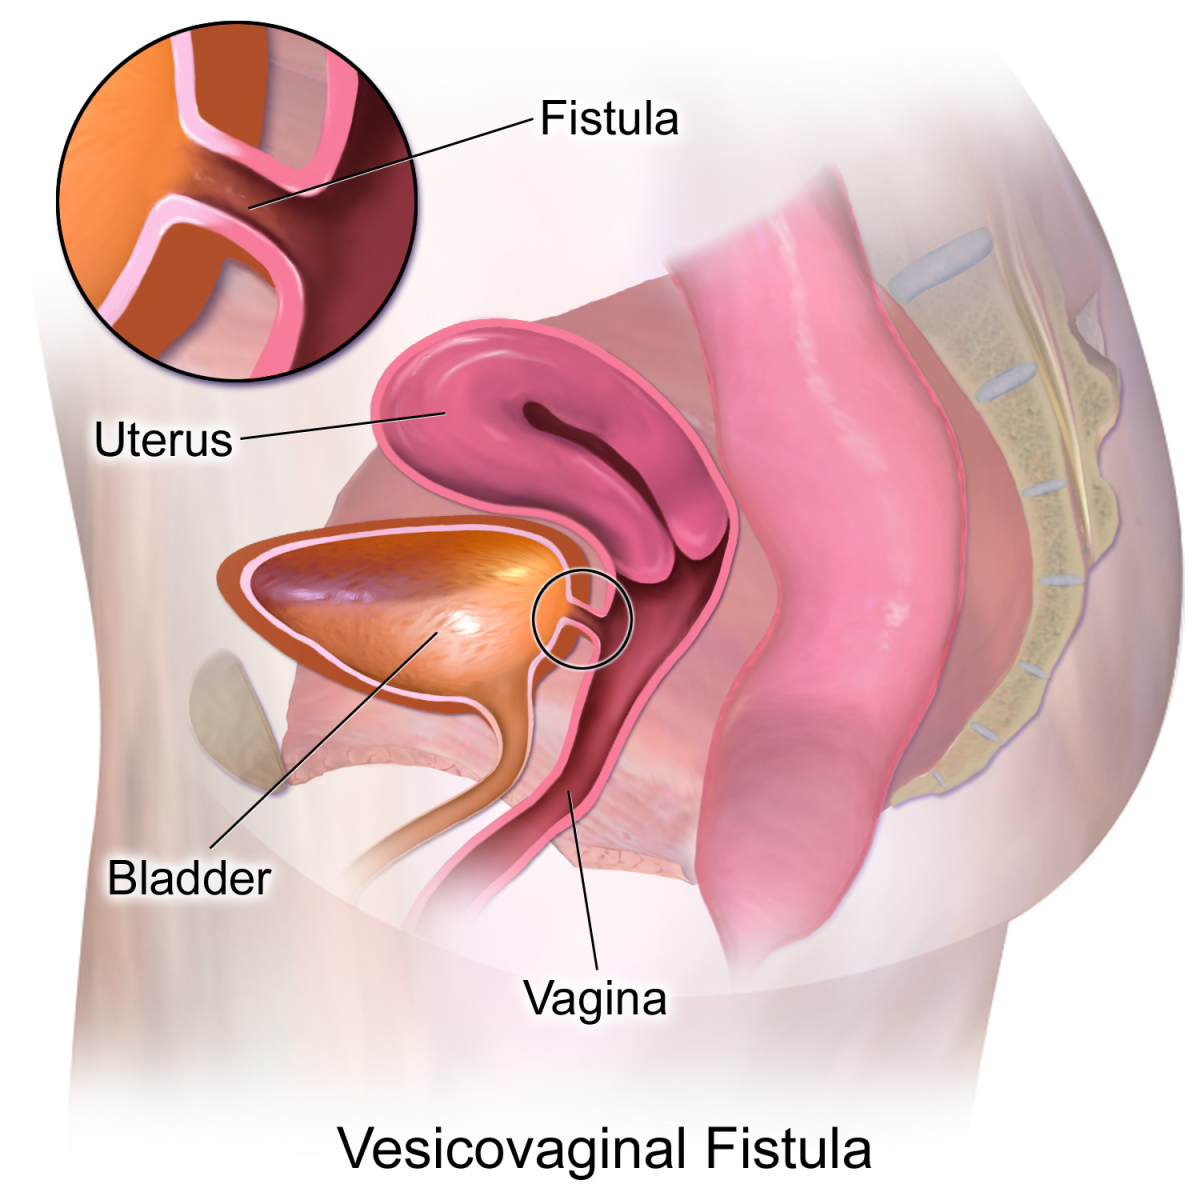 how-events-and-decisions-made-early-in-life-ultimately-influence-the-development-of-the-vesico-vaginal-fistula-vvf